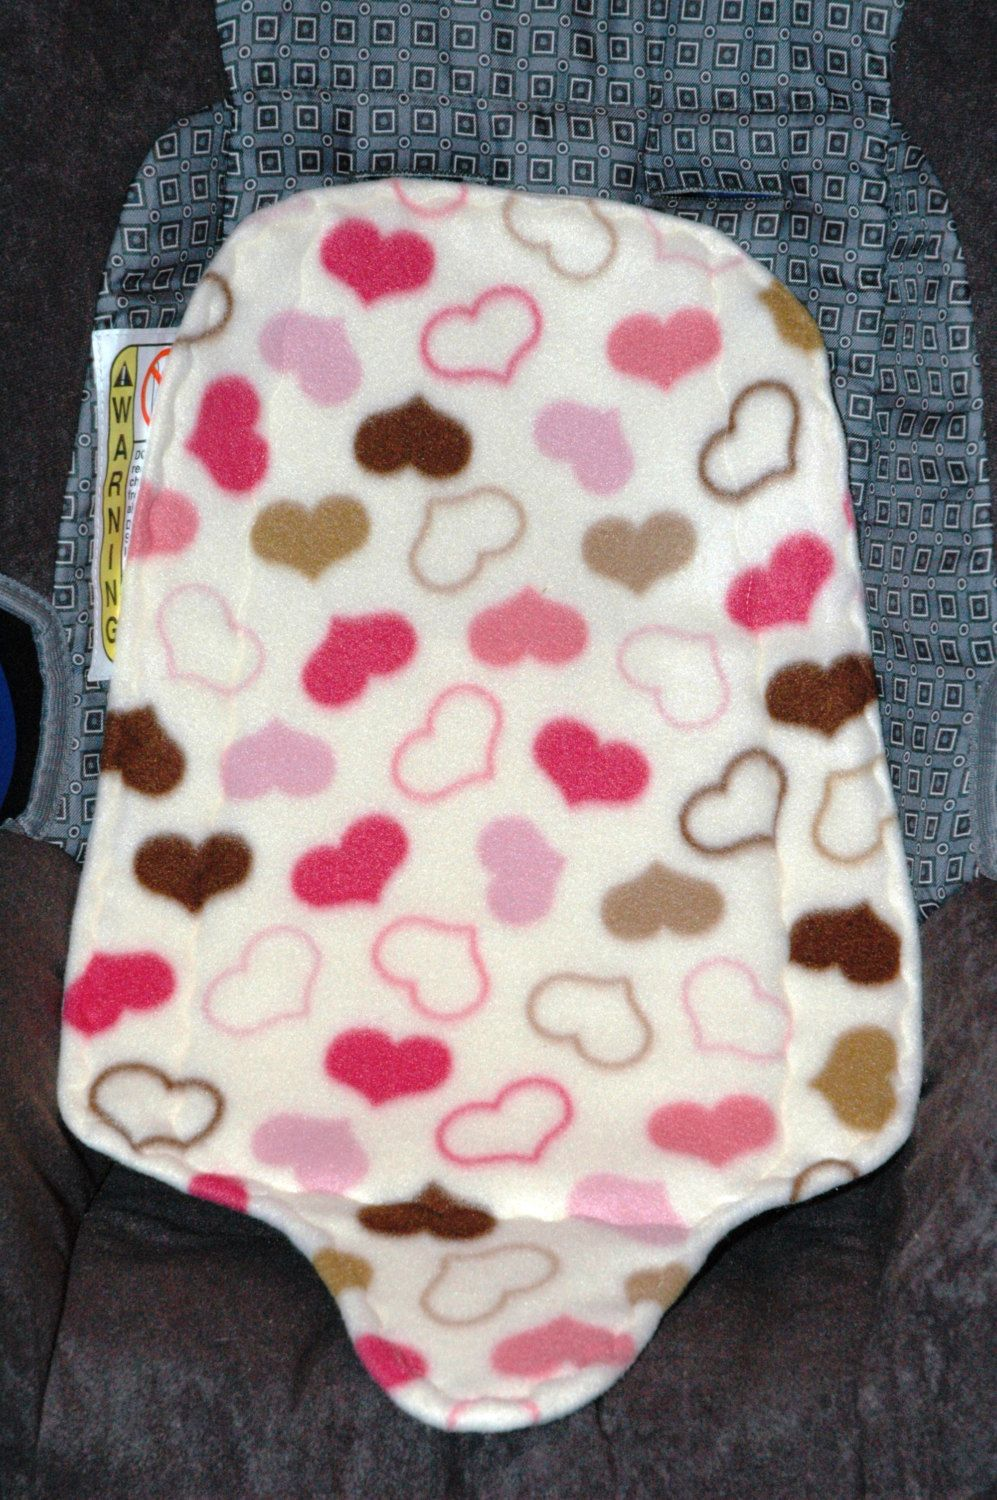 Car Seat Protector 12 X 20 Infant Liner Waterproof Pad Cover Highchair Swing By DreamersStudio On Etsy